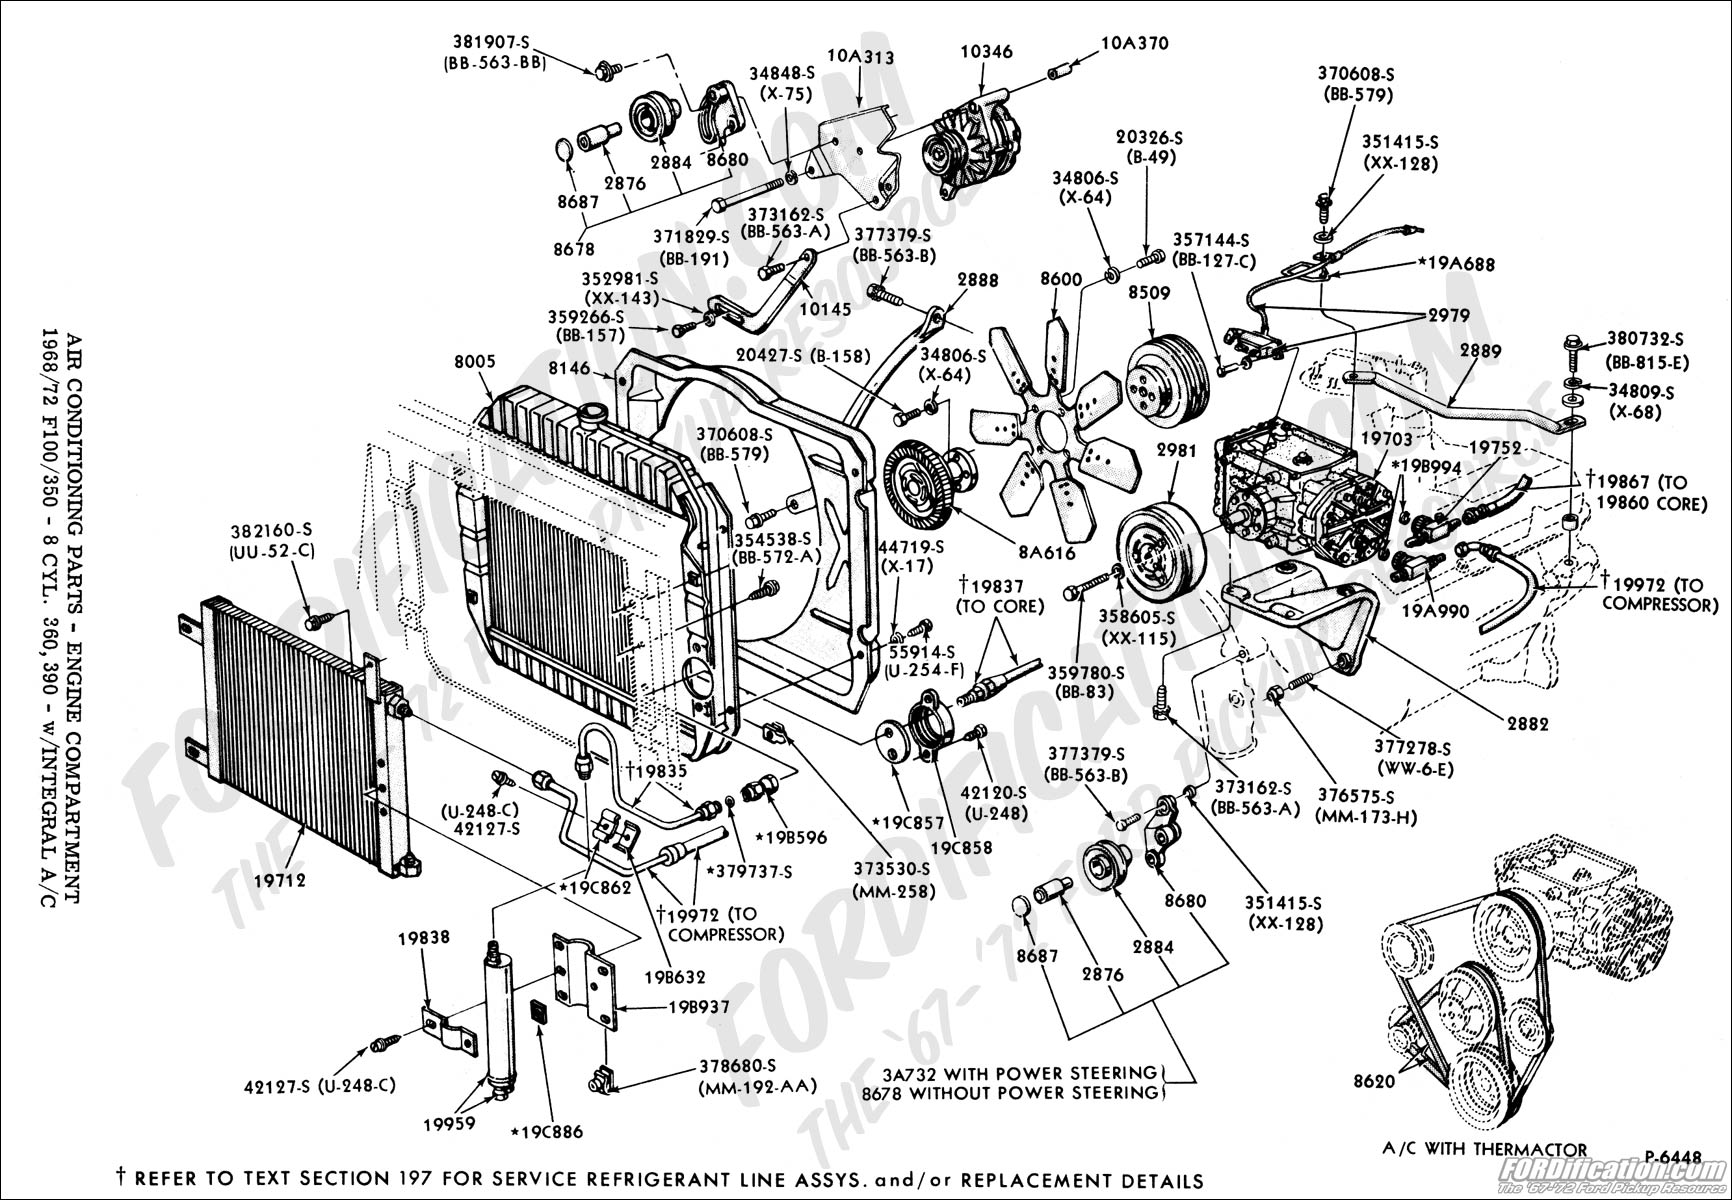 fire truck wiring diagram free picture schematic c5f88 1971 f100 wiring diagram factory wiring library  c5f88 1971 f100 wiring diagram factory